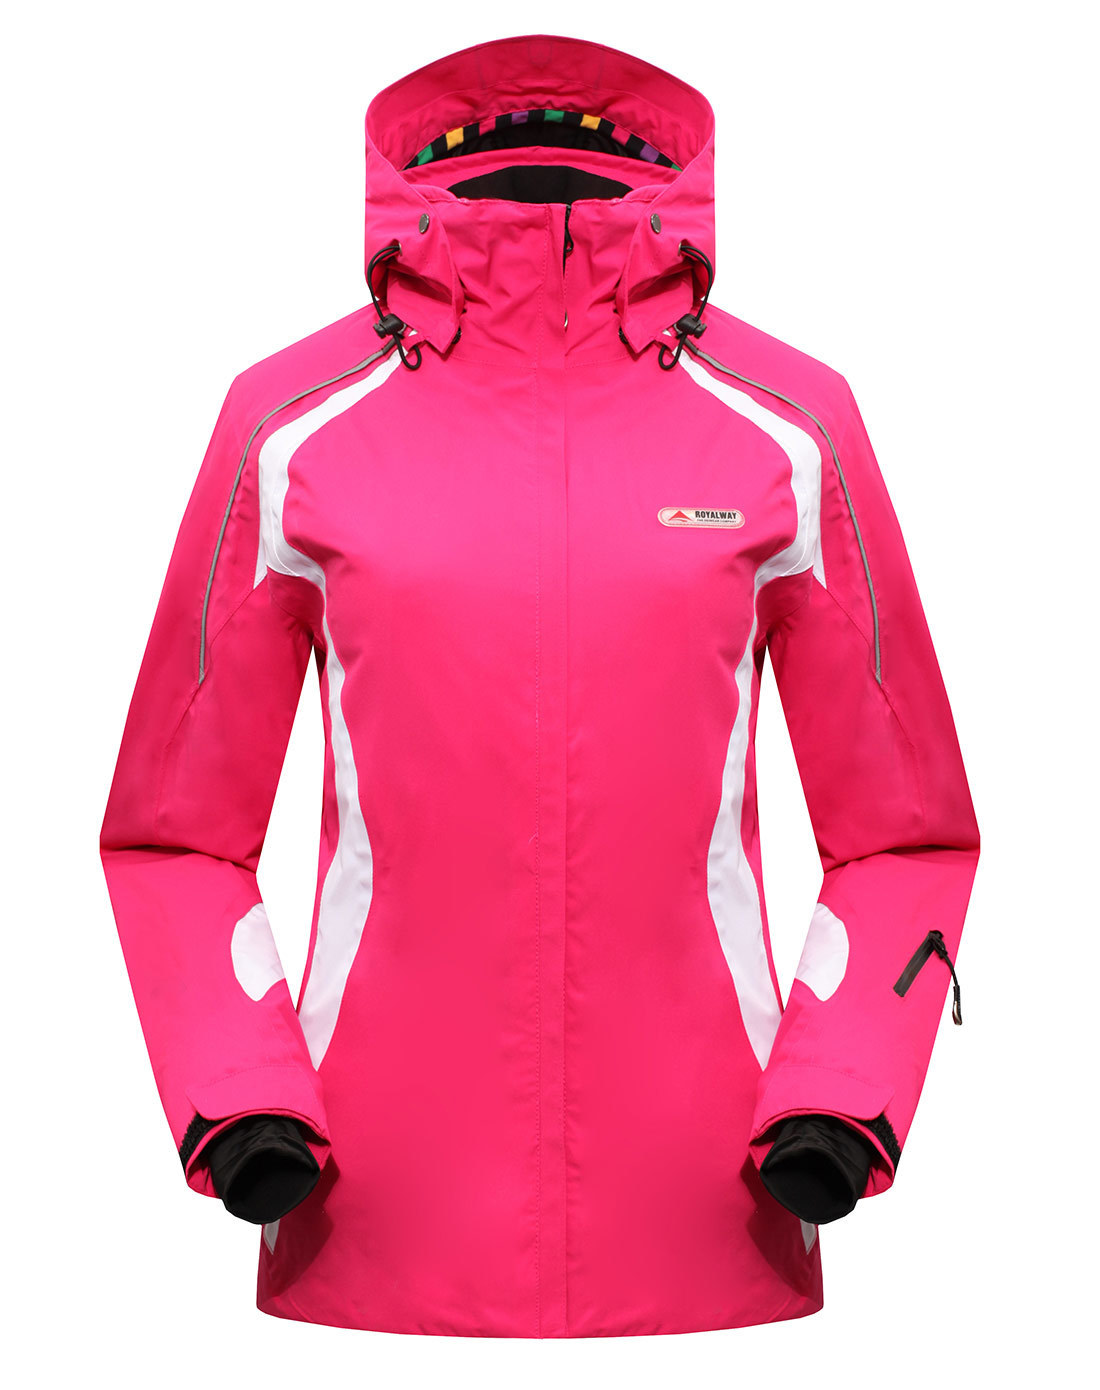 ROYALWAY Women Skiing Ski Jacket Snowboard Jacket Female Ski Clothes Waterproof Windproof Super Quality Security# RFSL4519G ...